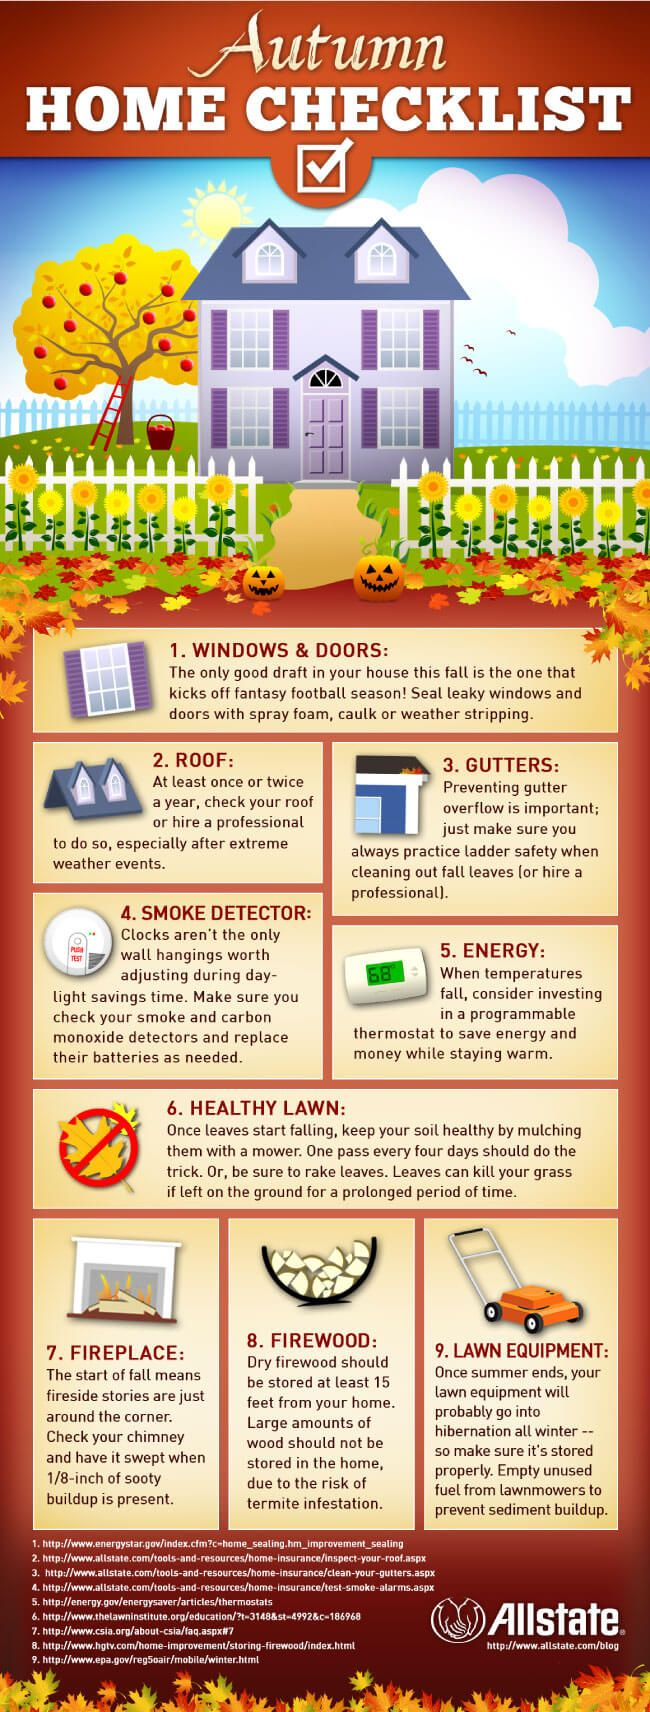 Tips to Perform the Best Autumn Home Checklist tips tipsographic